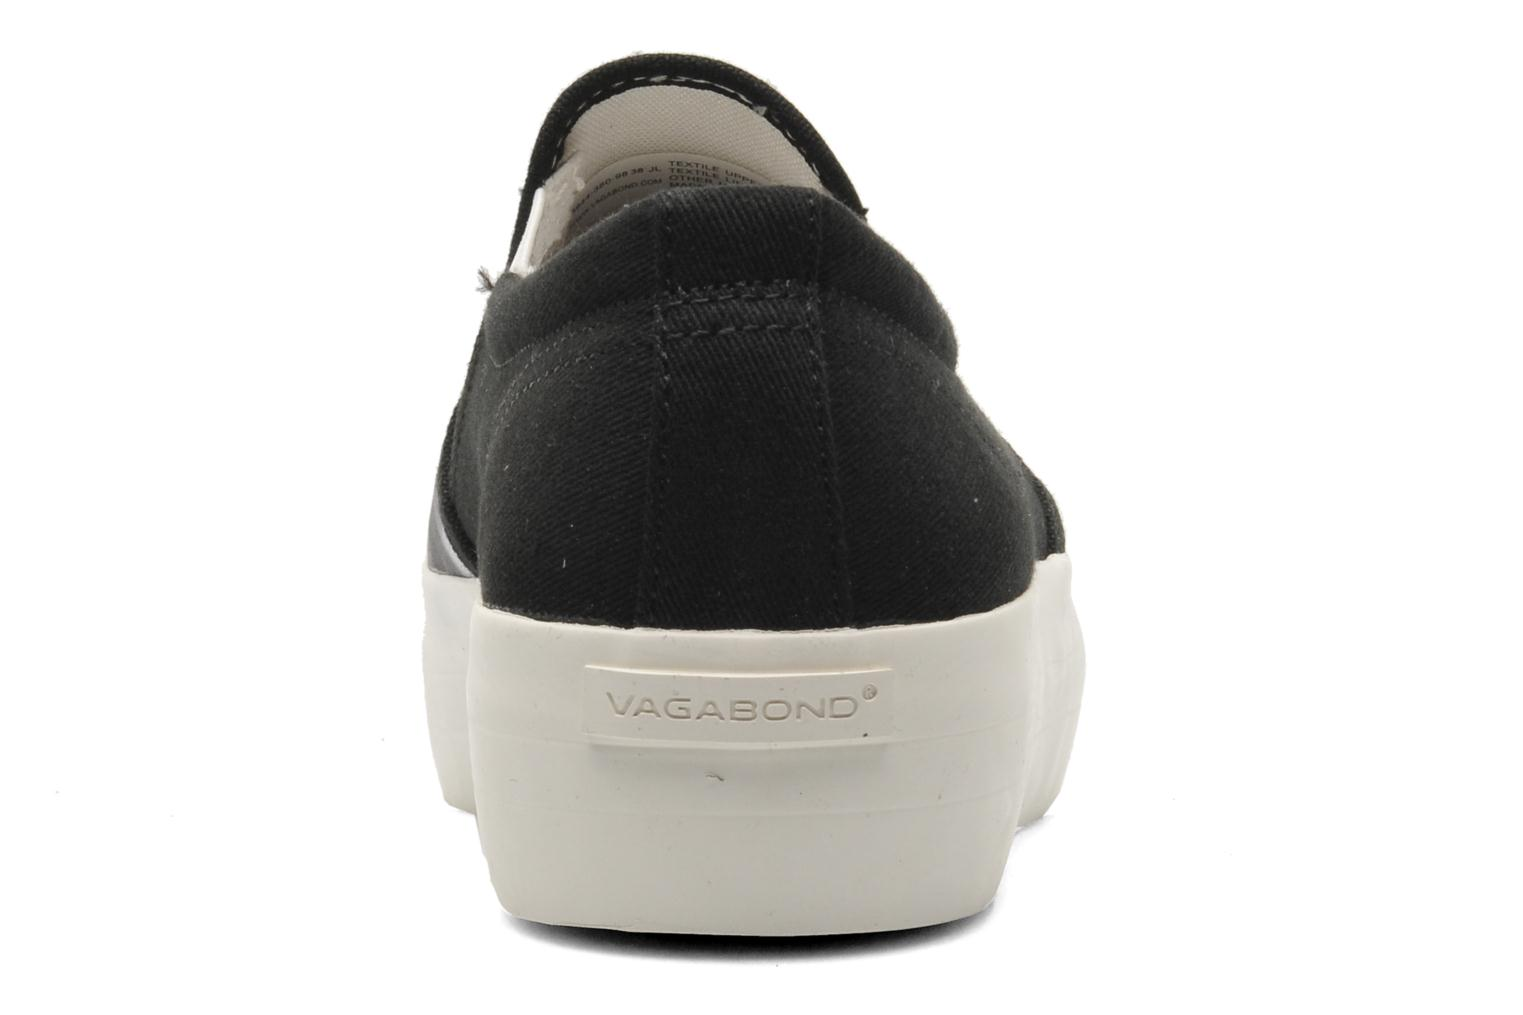 KEIRA 3944-380 98 black/white